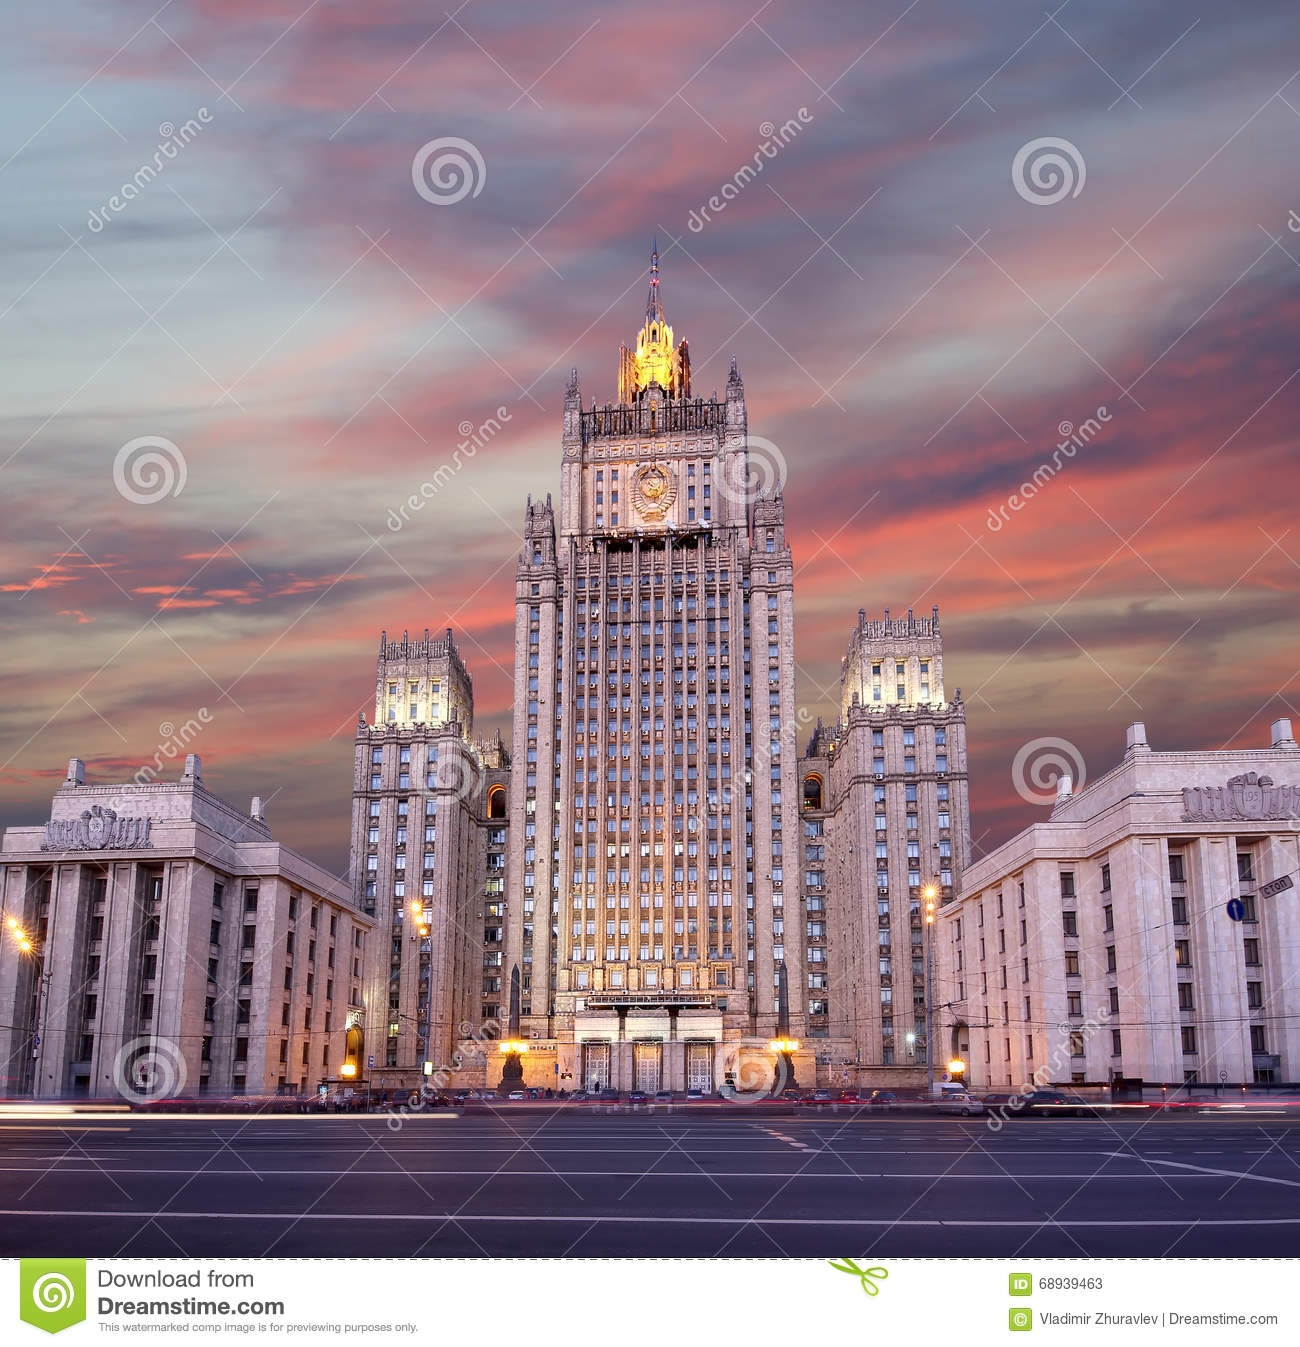 Ministry of Foreign Affairs of the Russian Federation, Smolenskaya Square, Moscow, Russia